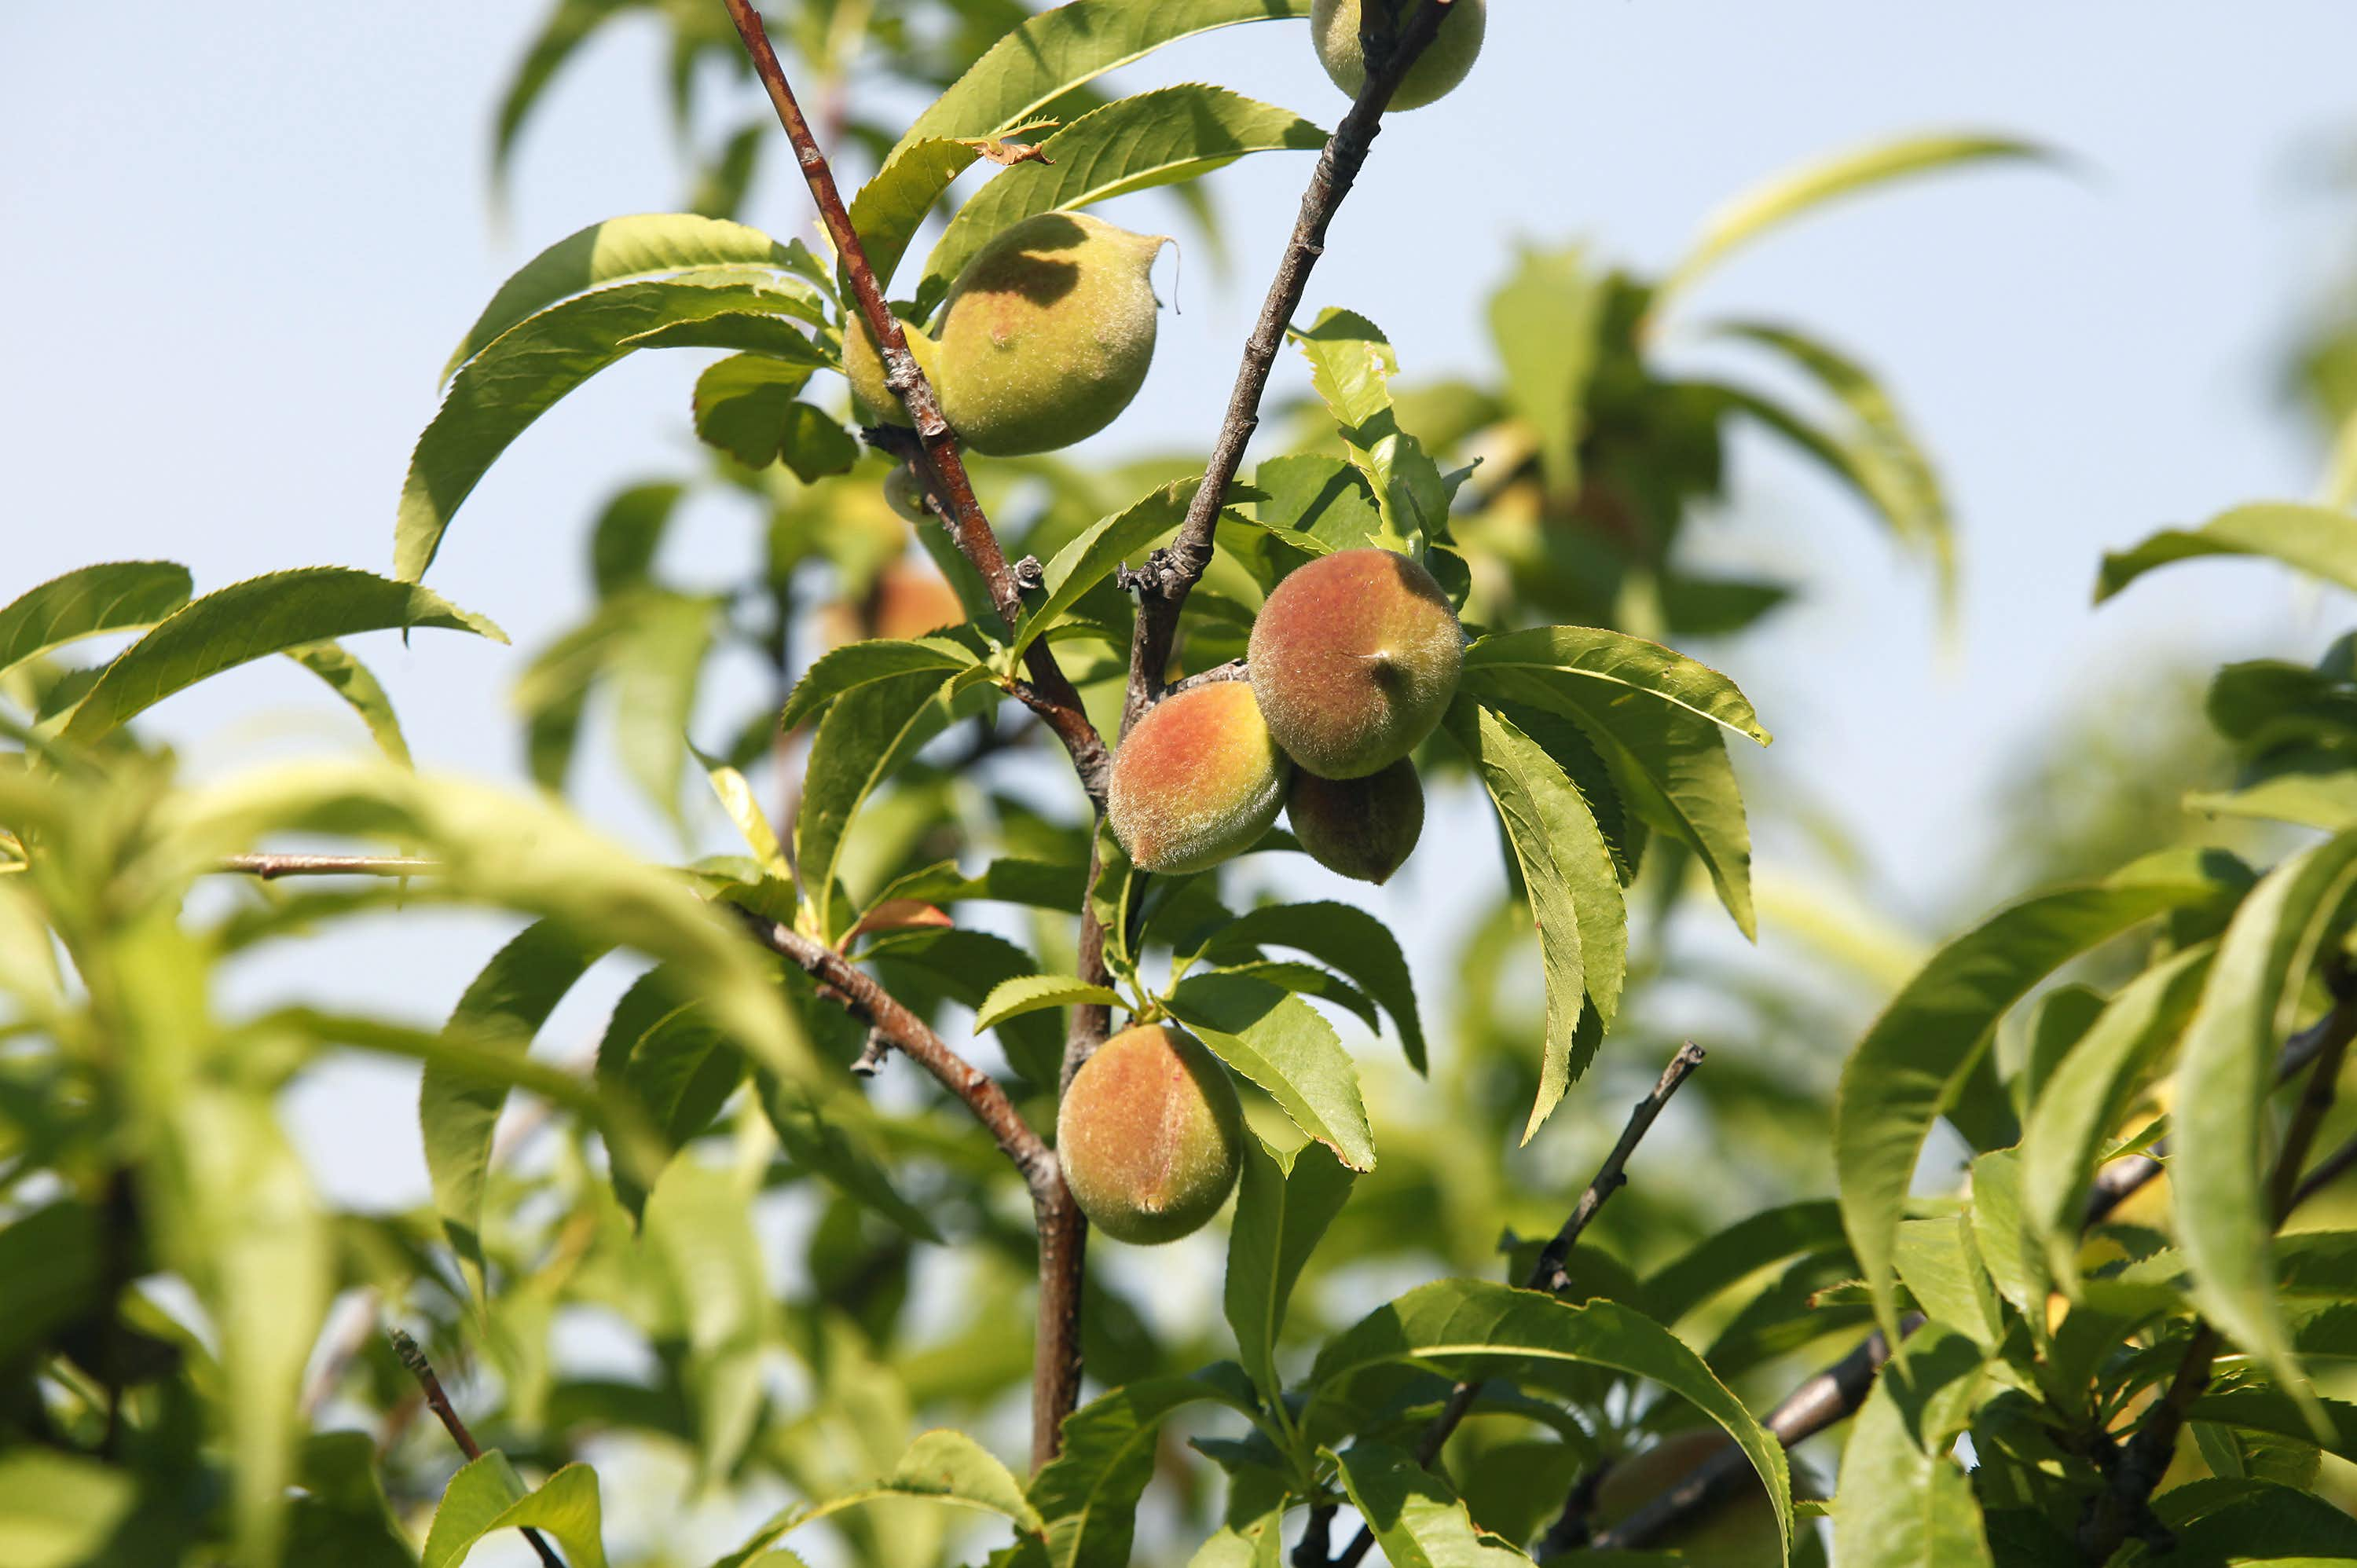 Here's how to properly plant a fruit tree in clay soil